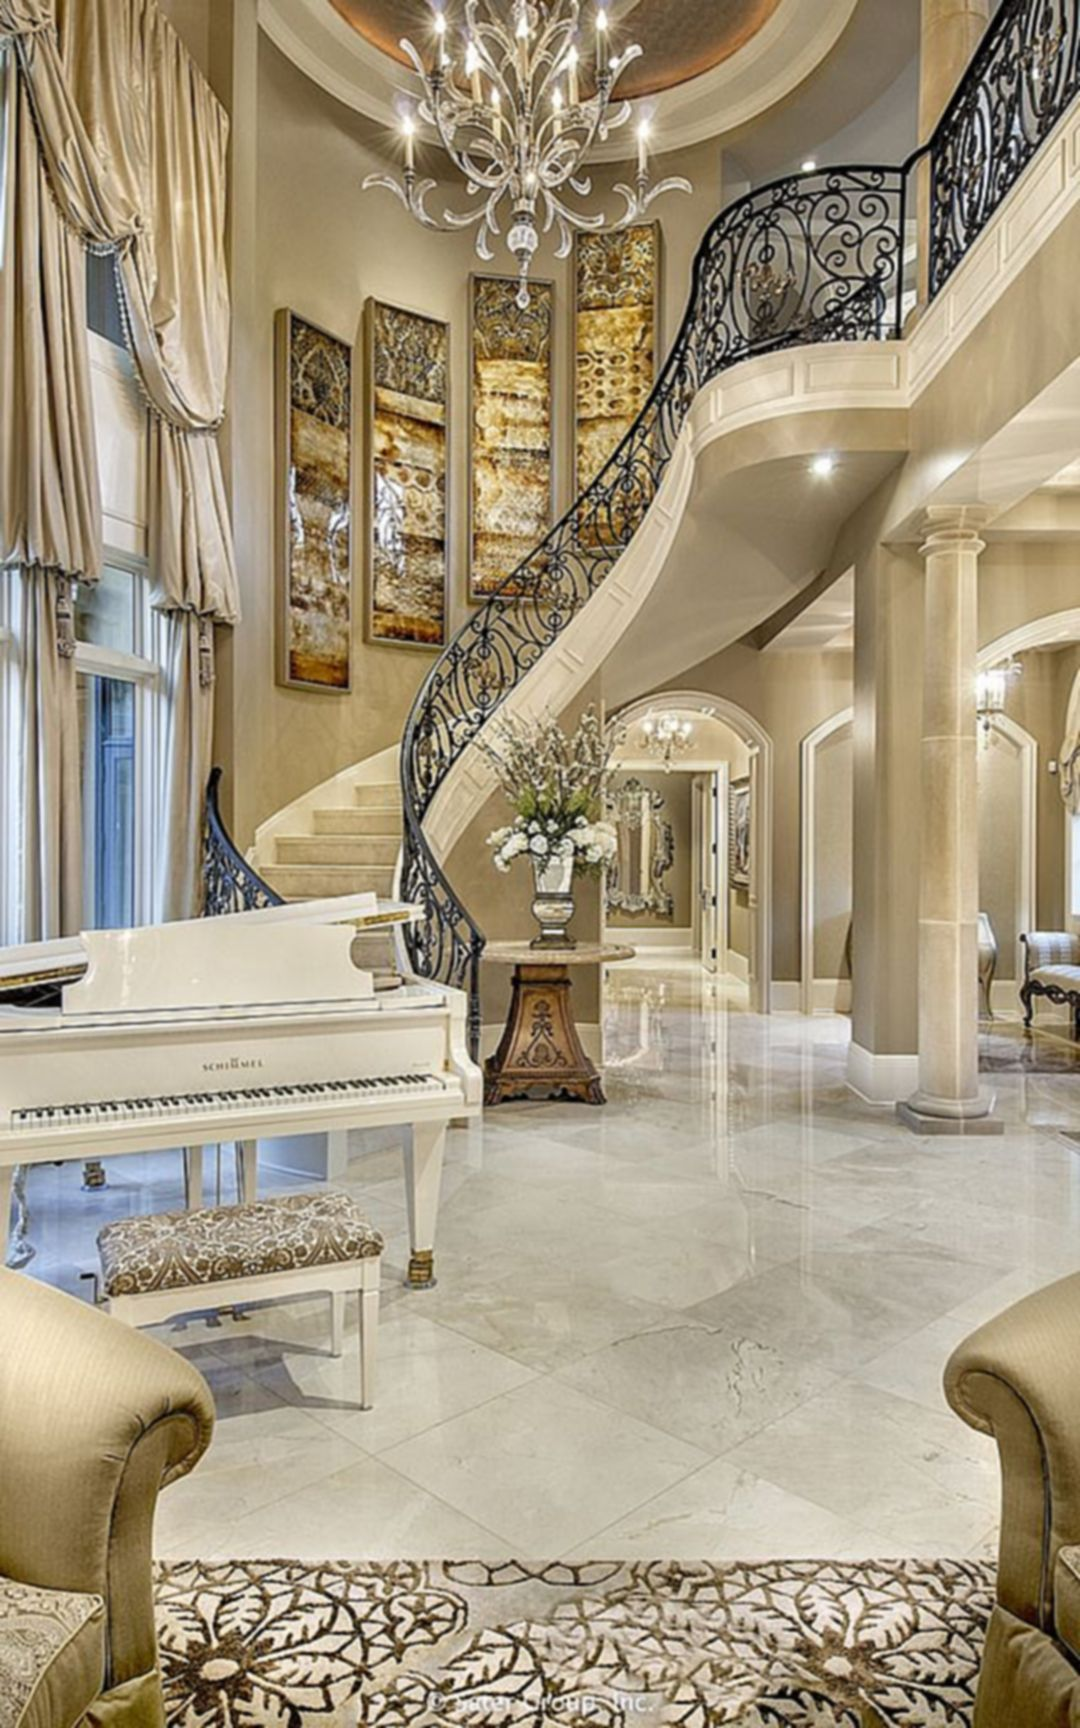 30 Luxury And Elegant Homes Interior Design That You Never Seen